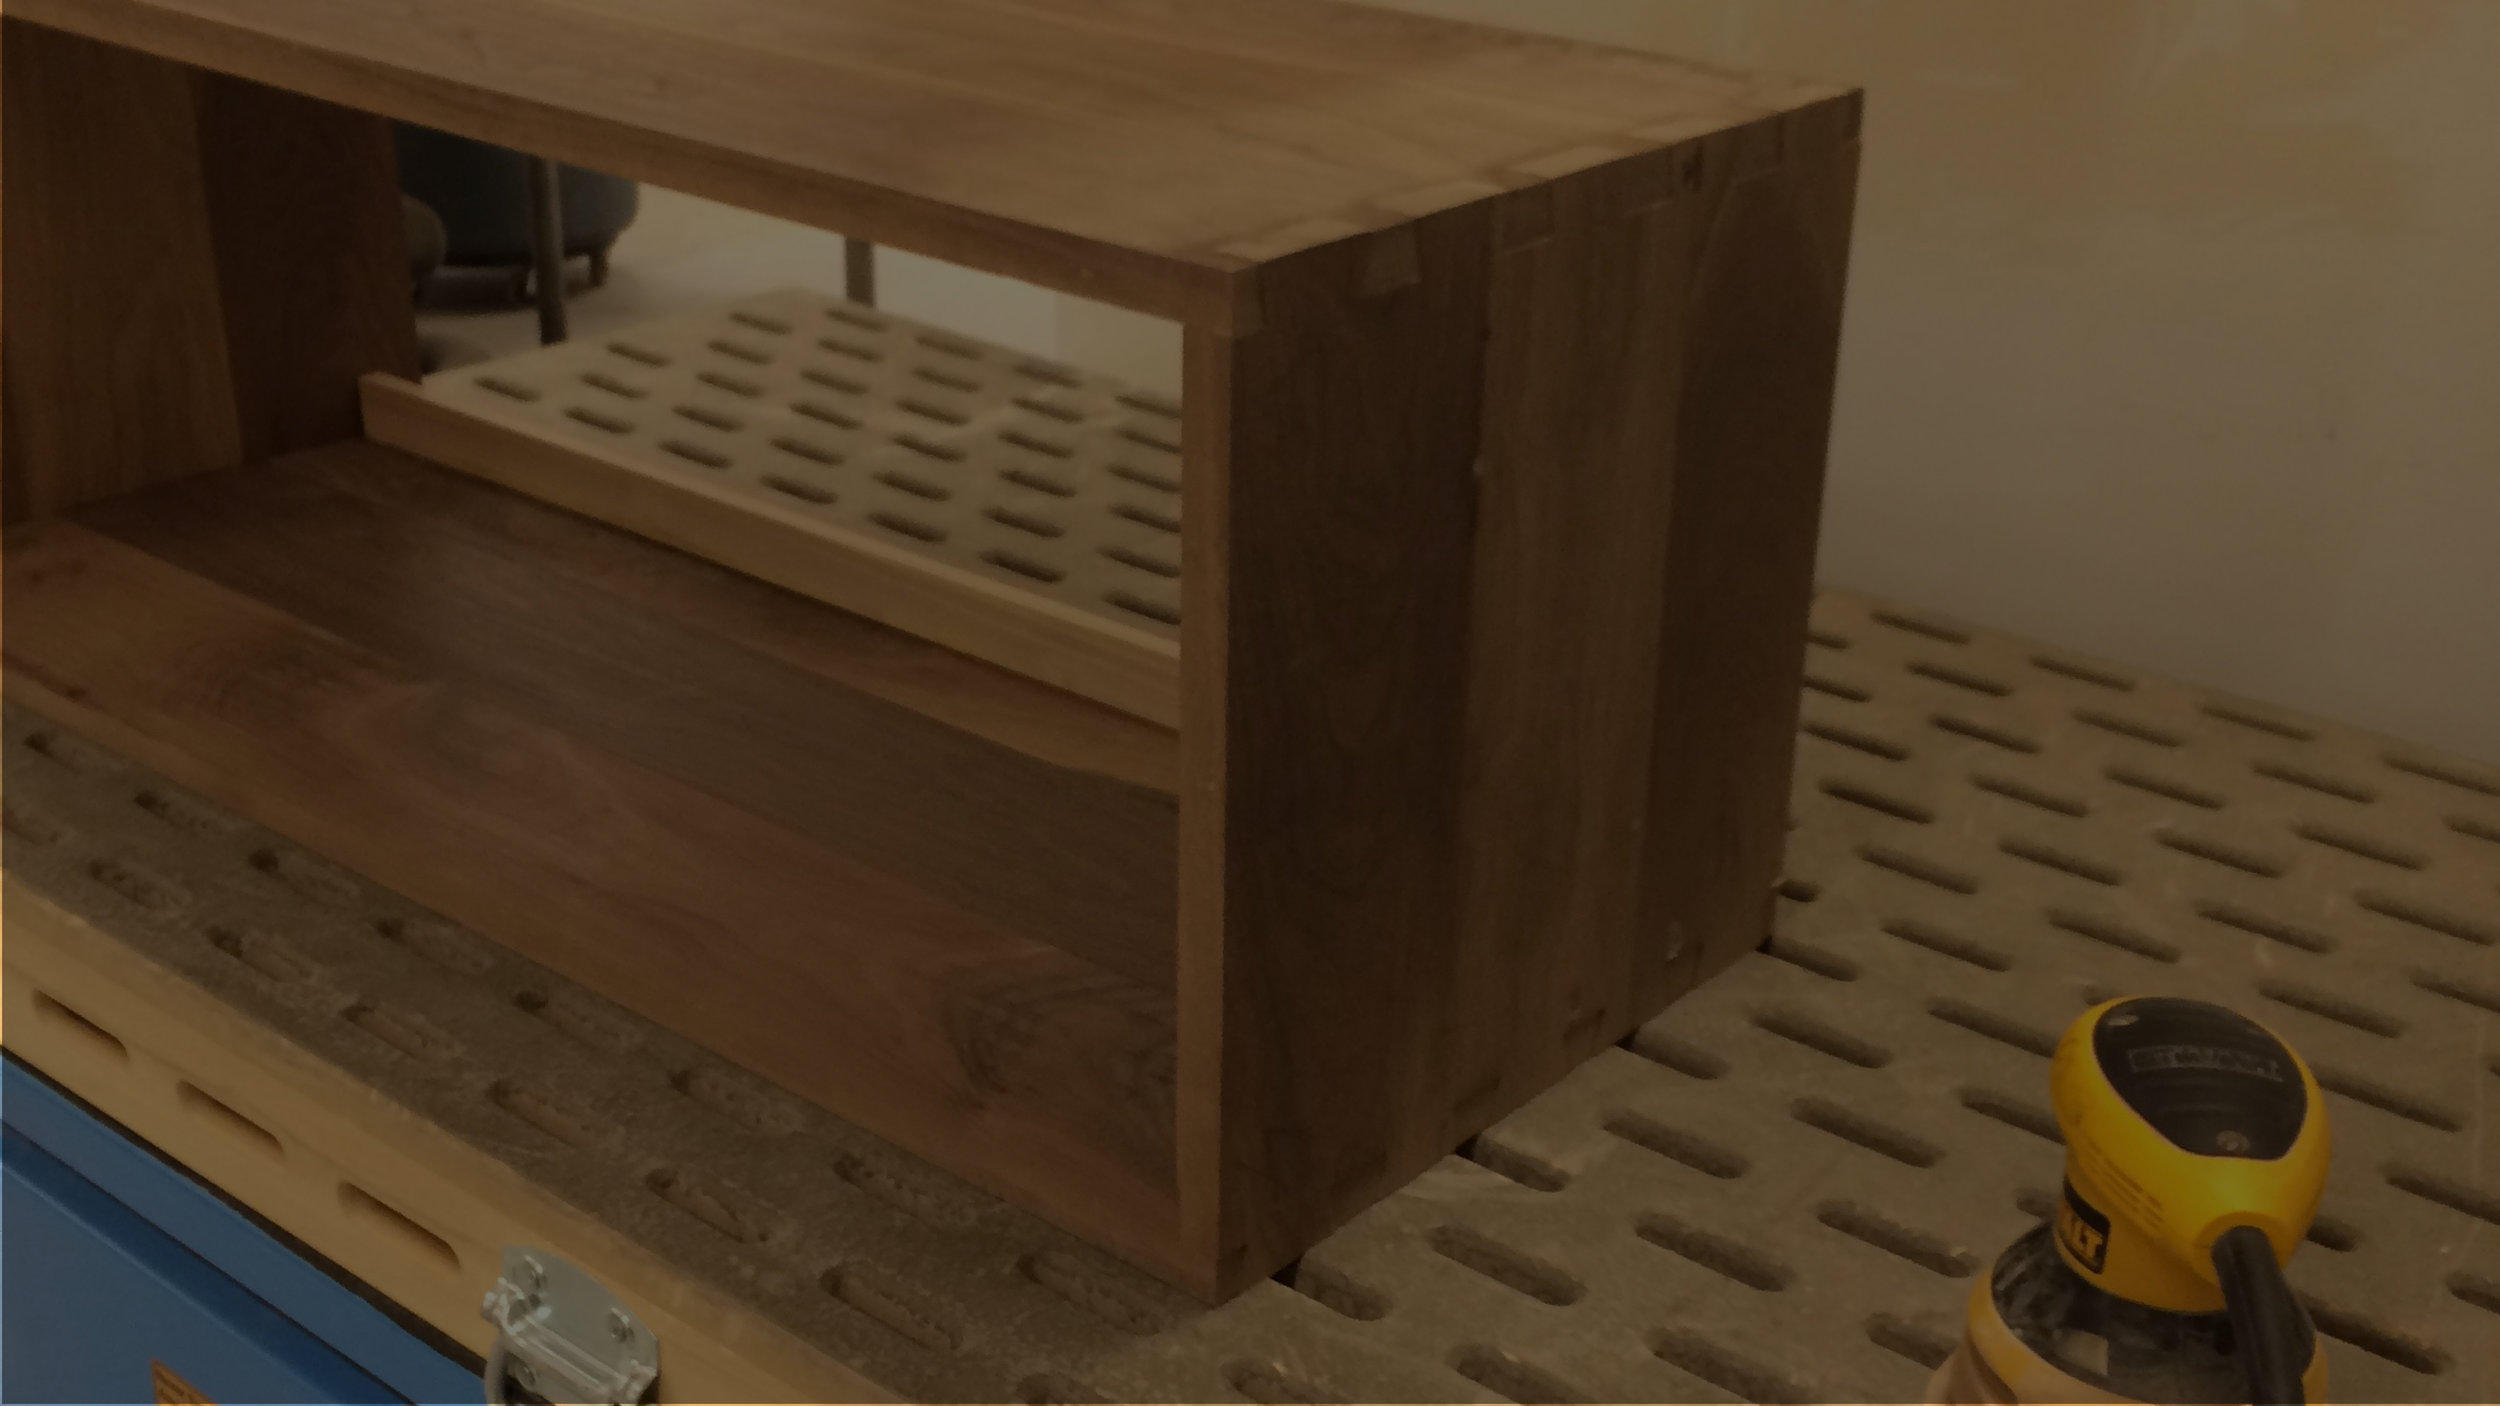 BLANKET Chest - Updated design utilizing classic joineryFall 2017